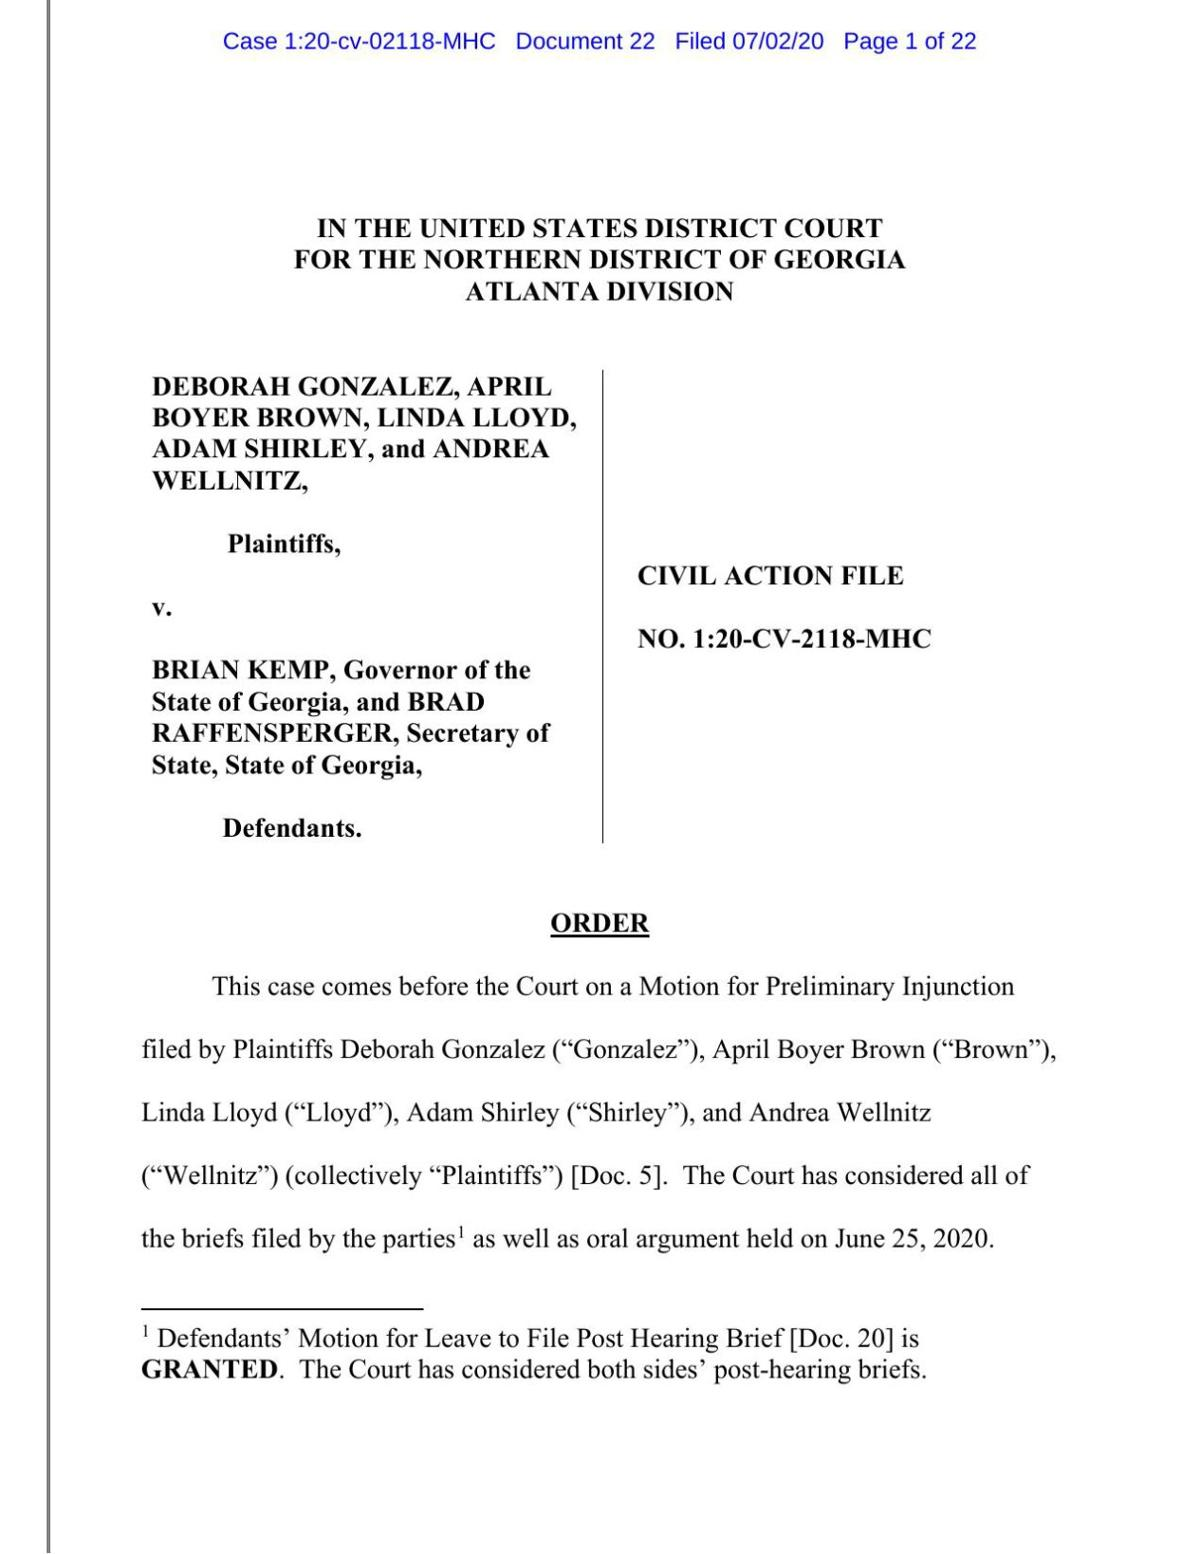 district attorney court ruling